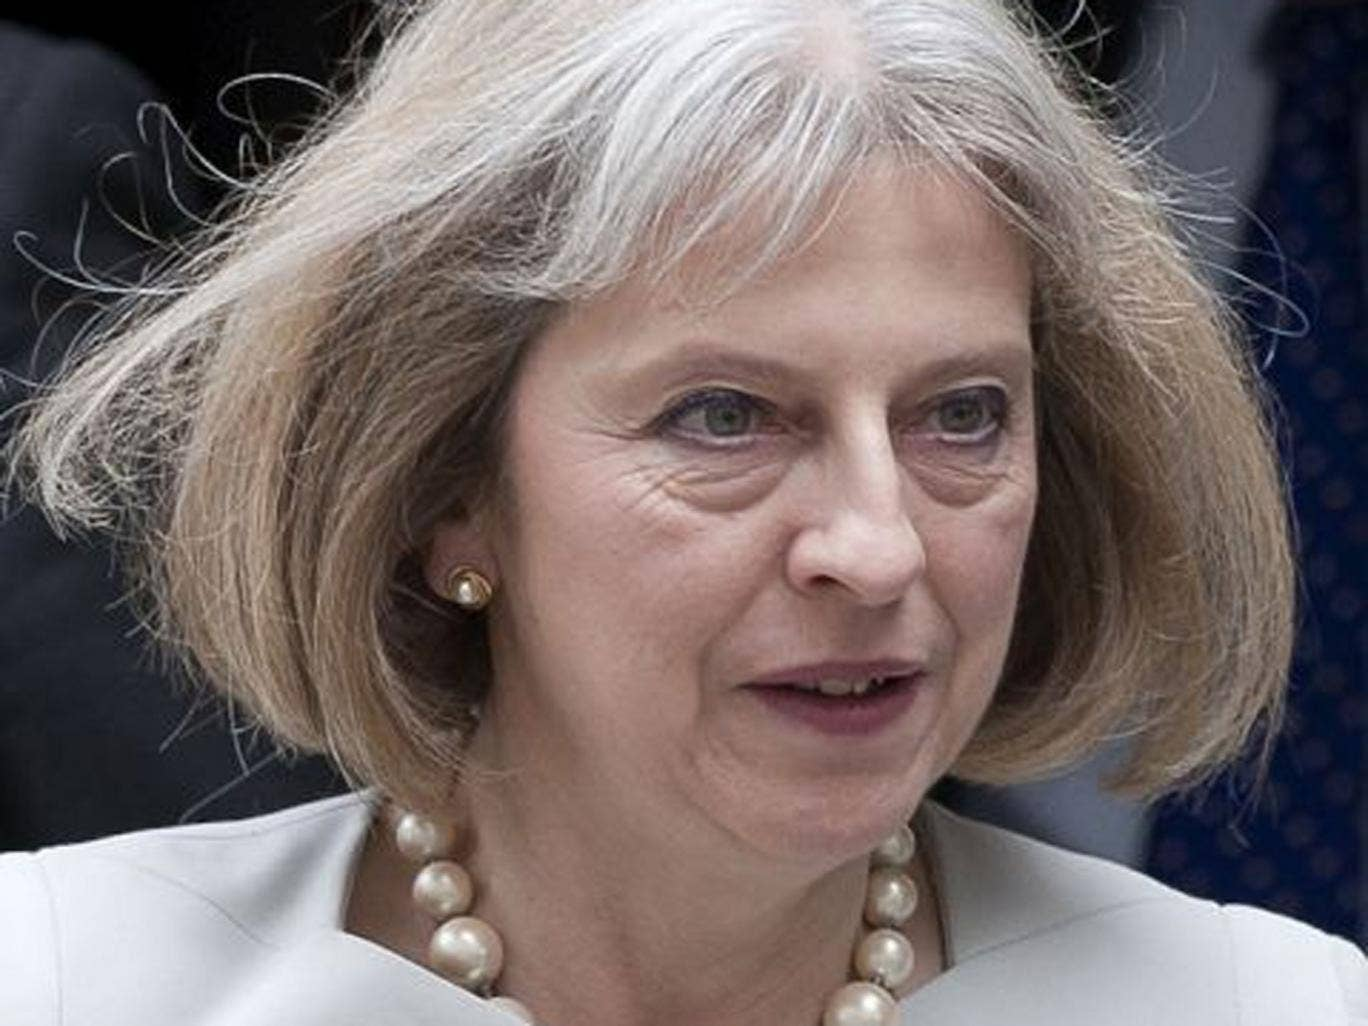 Poll results show Theresa May has just overtaken Boris Johnson as a front-runner for the next leader of the Tories